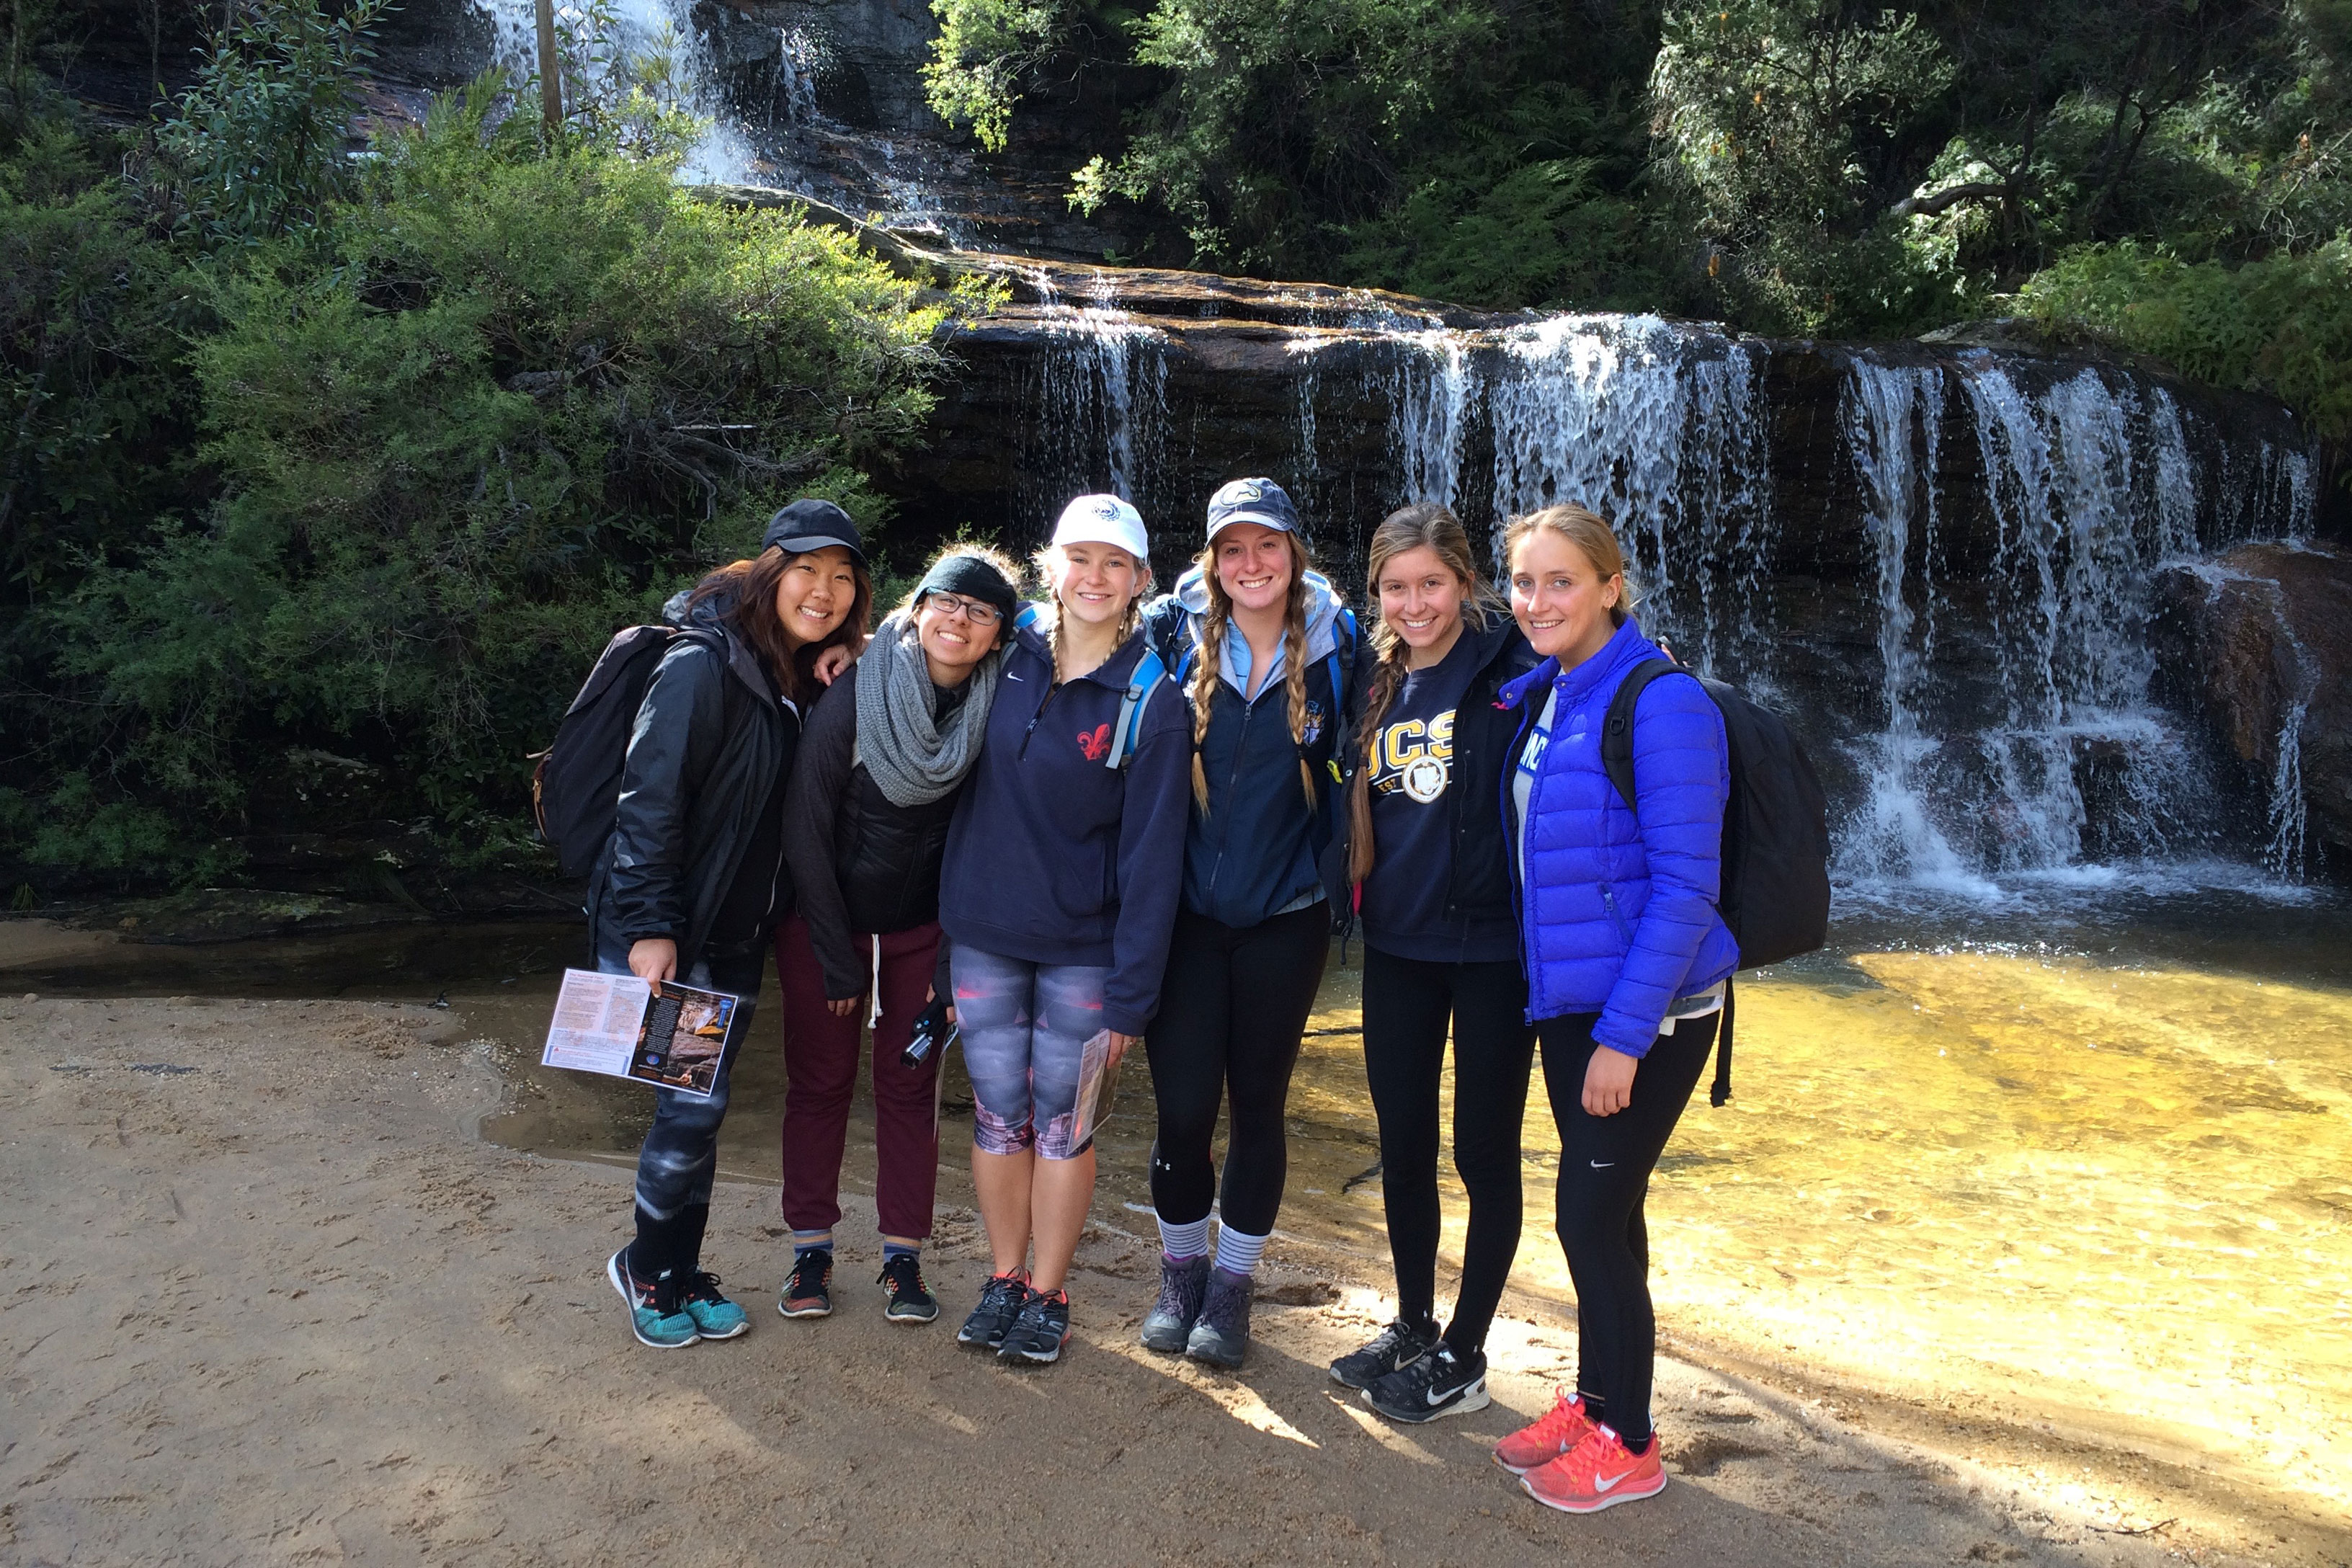 Group of friends posing in front of a waterfall